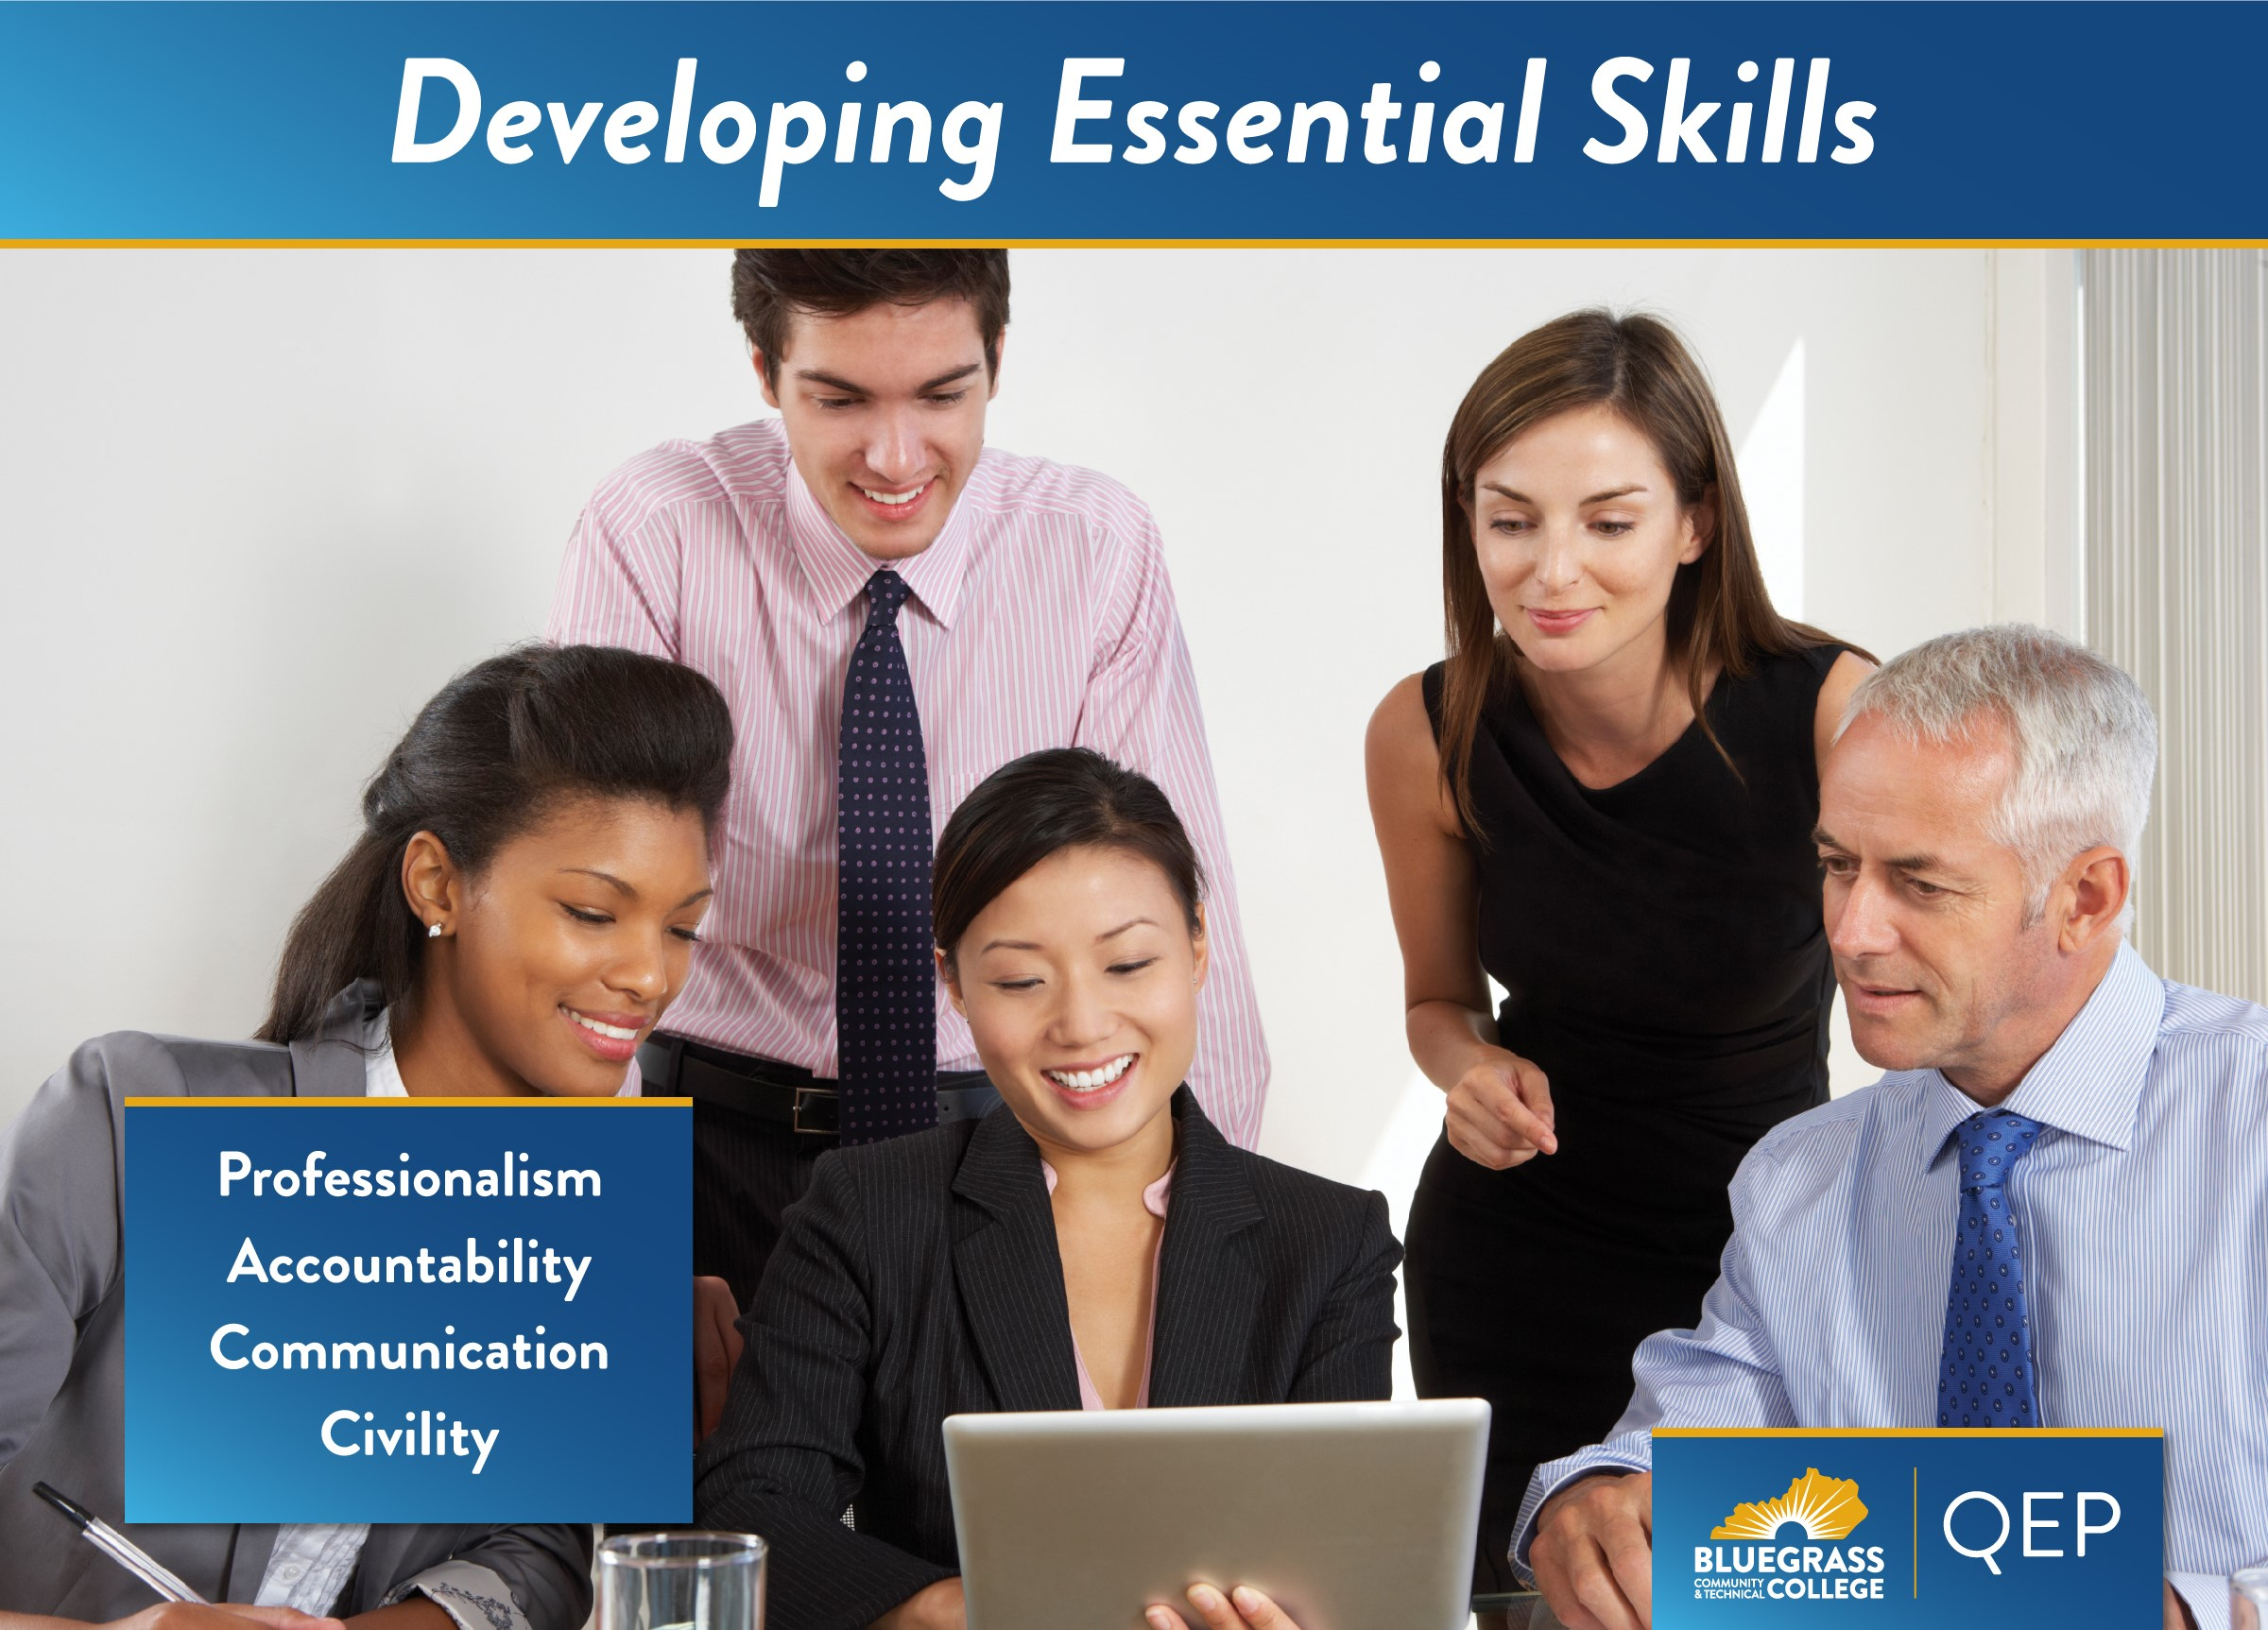 developing essential skills - Professionalism, accountability, communication, civility